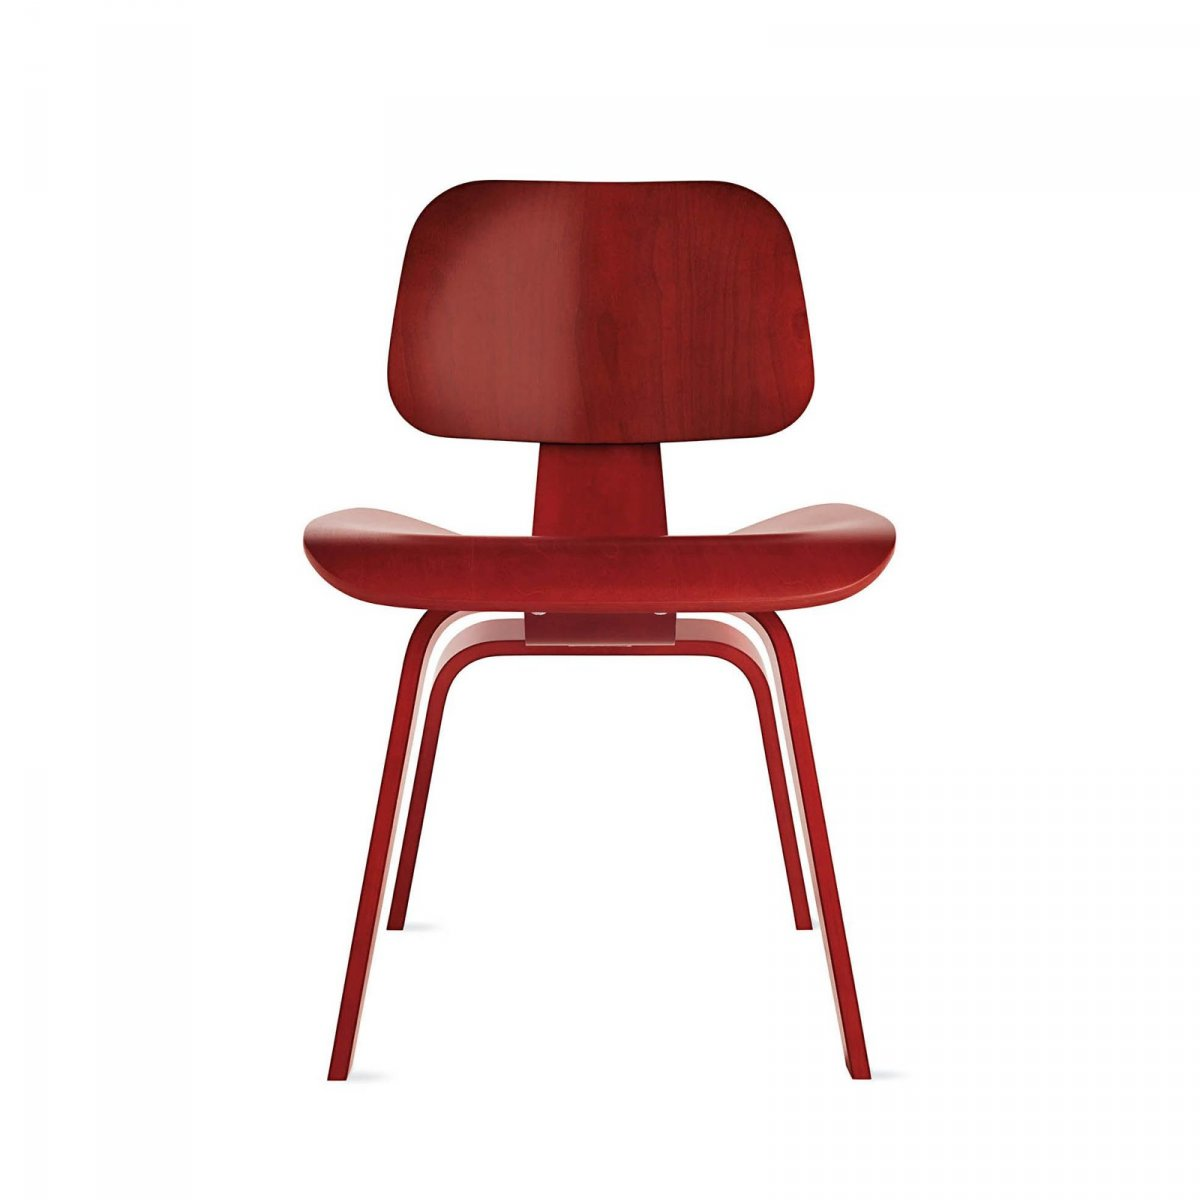 Eames Molded Plywood Dining Chair Wood Base, red aniline stained birch.